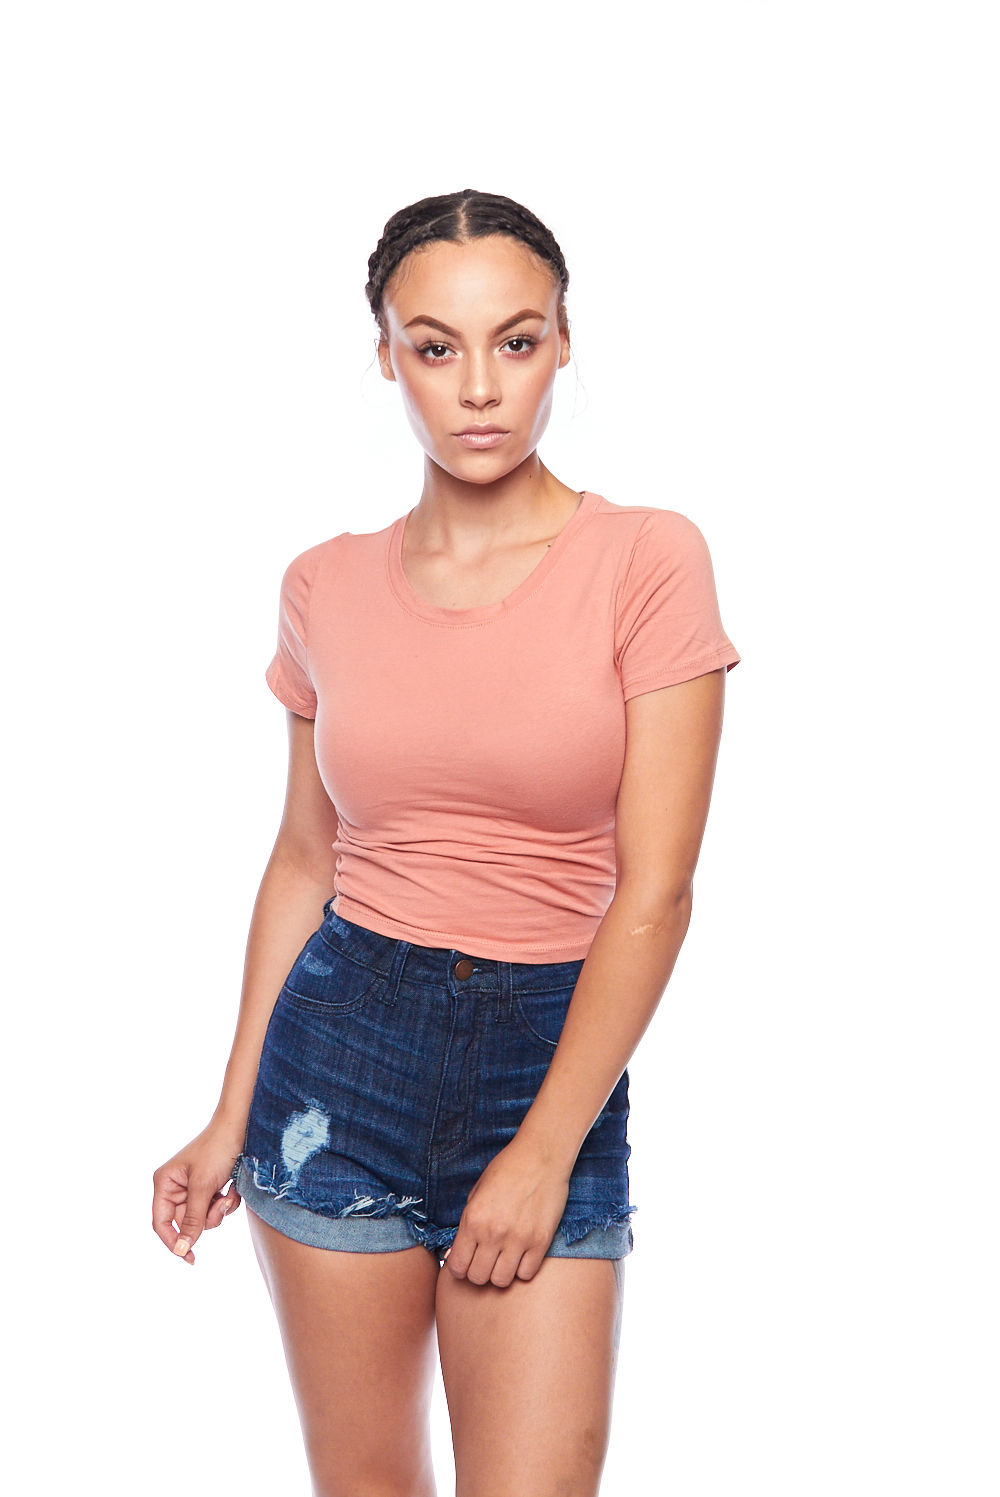 Womens Fitted Basic Solid Round Neck Short Sleeves Crop Top RT32675-S-D. Rose